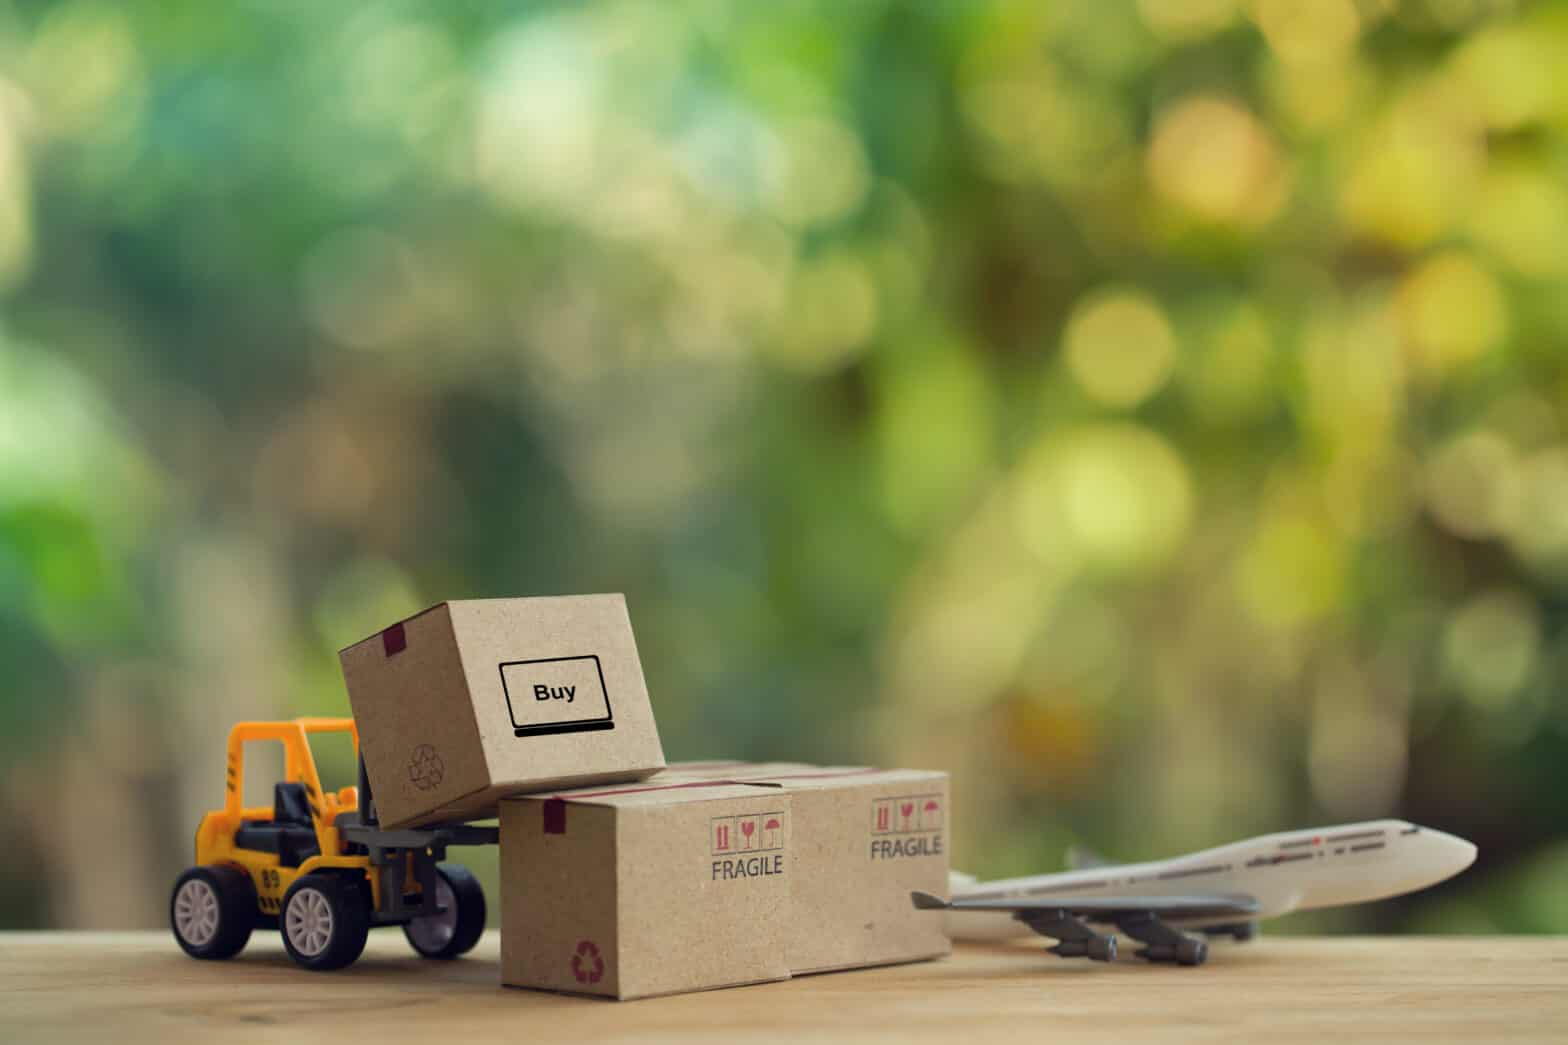 supply-chain-shortages-logistic-cargo-freight-concept-fork-lift-truck-moves-pallet-with-paper-boxes-plane